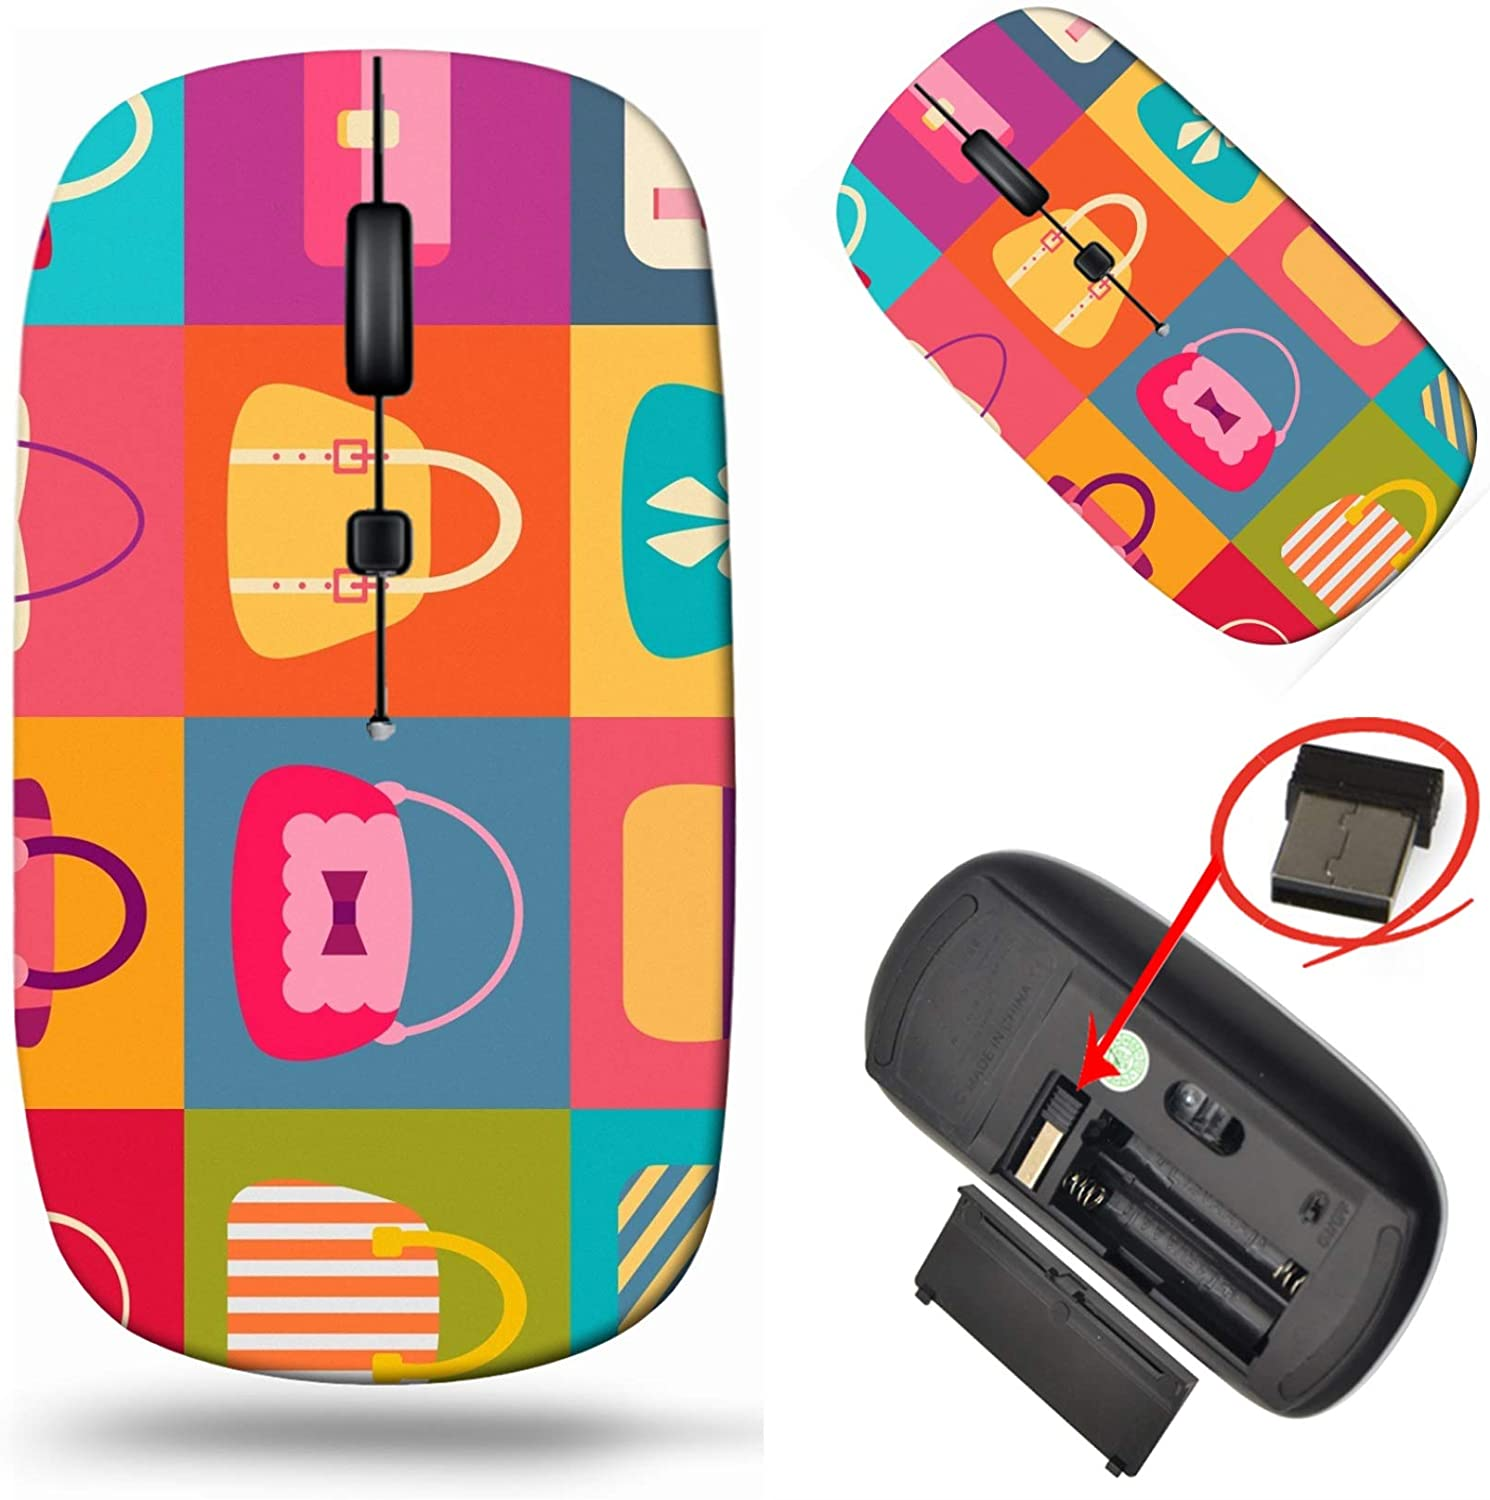 MSD Wireless Max 65% OFF Mouse Laptop 2.4G Classic Travel Mice USB with Receiv